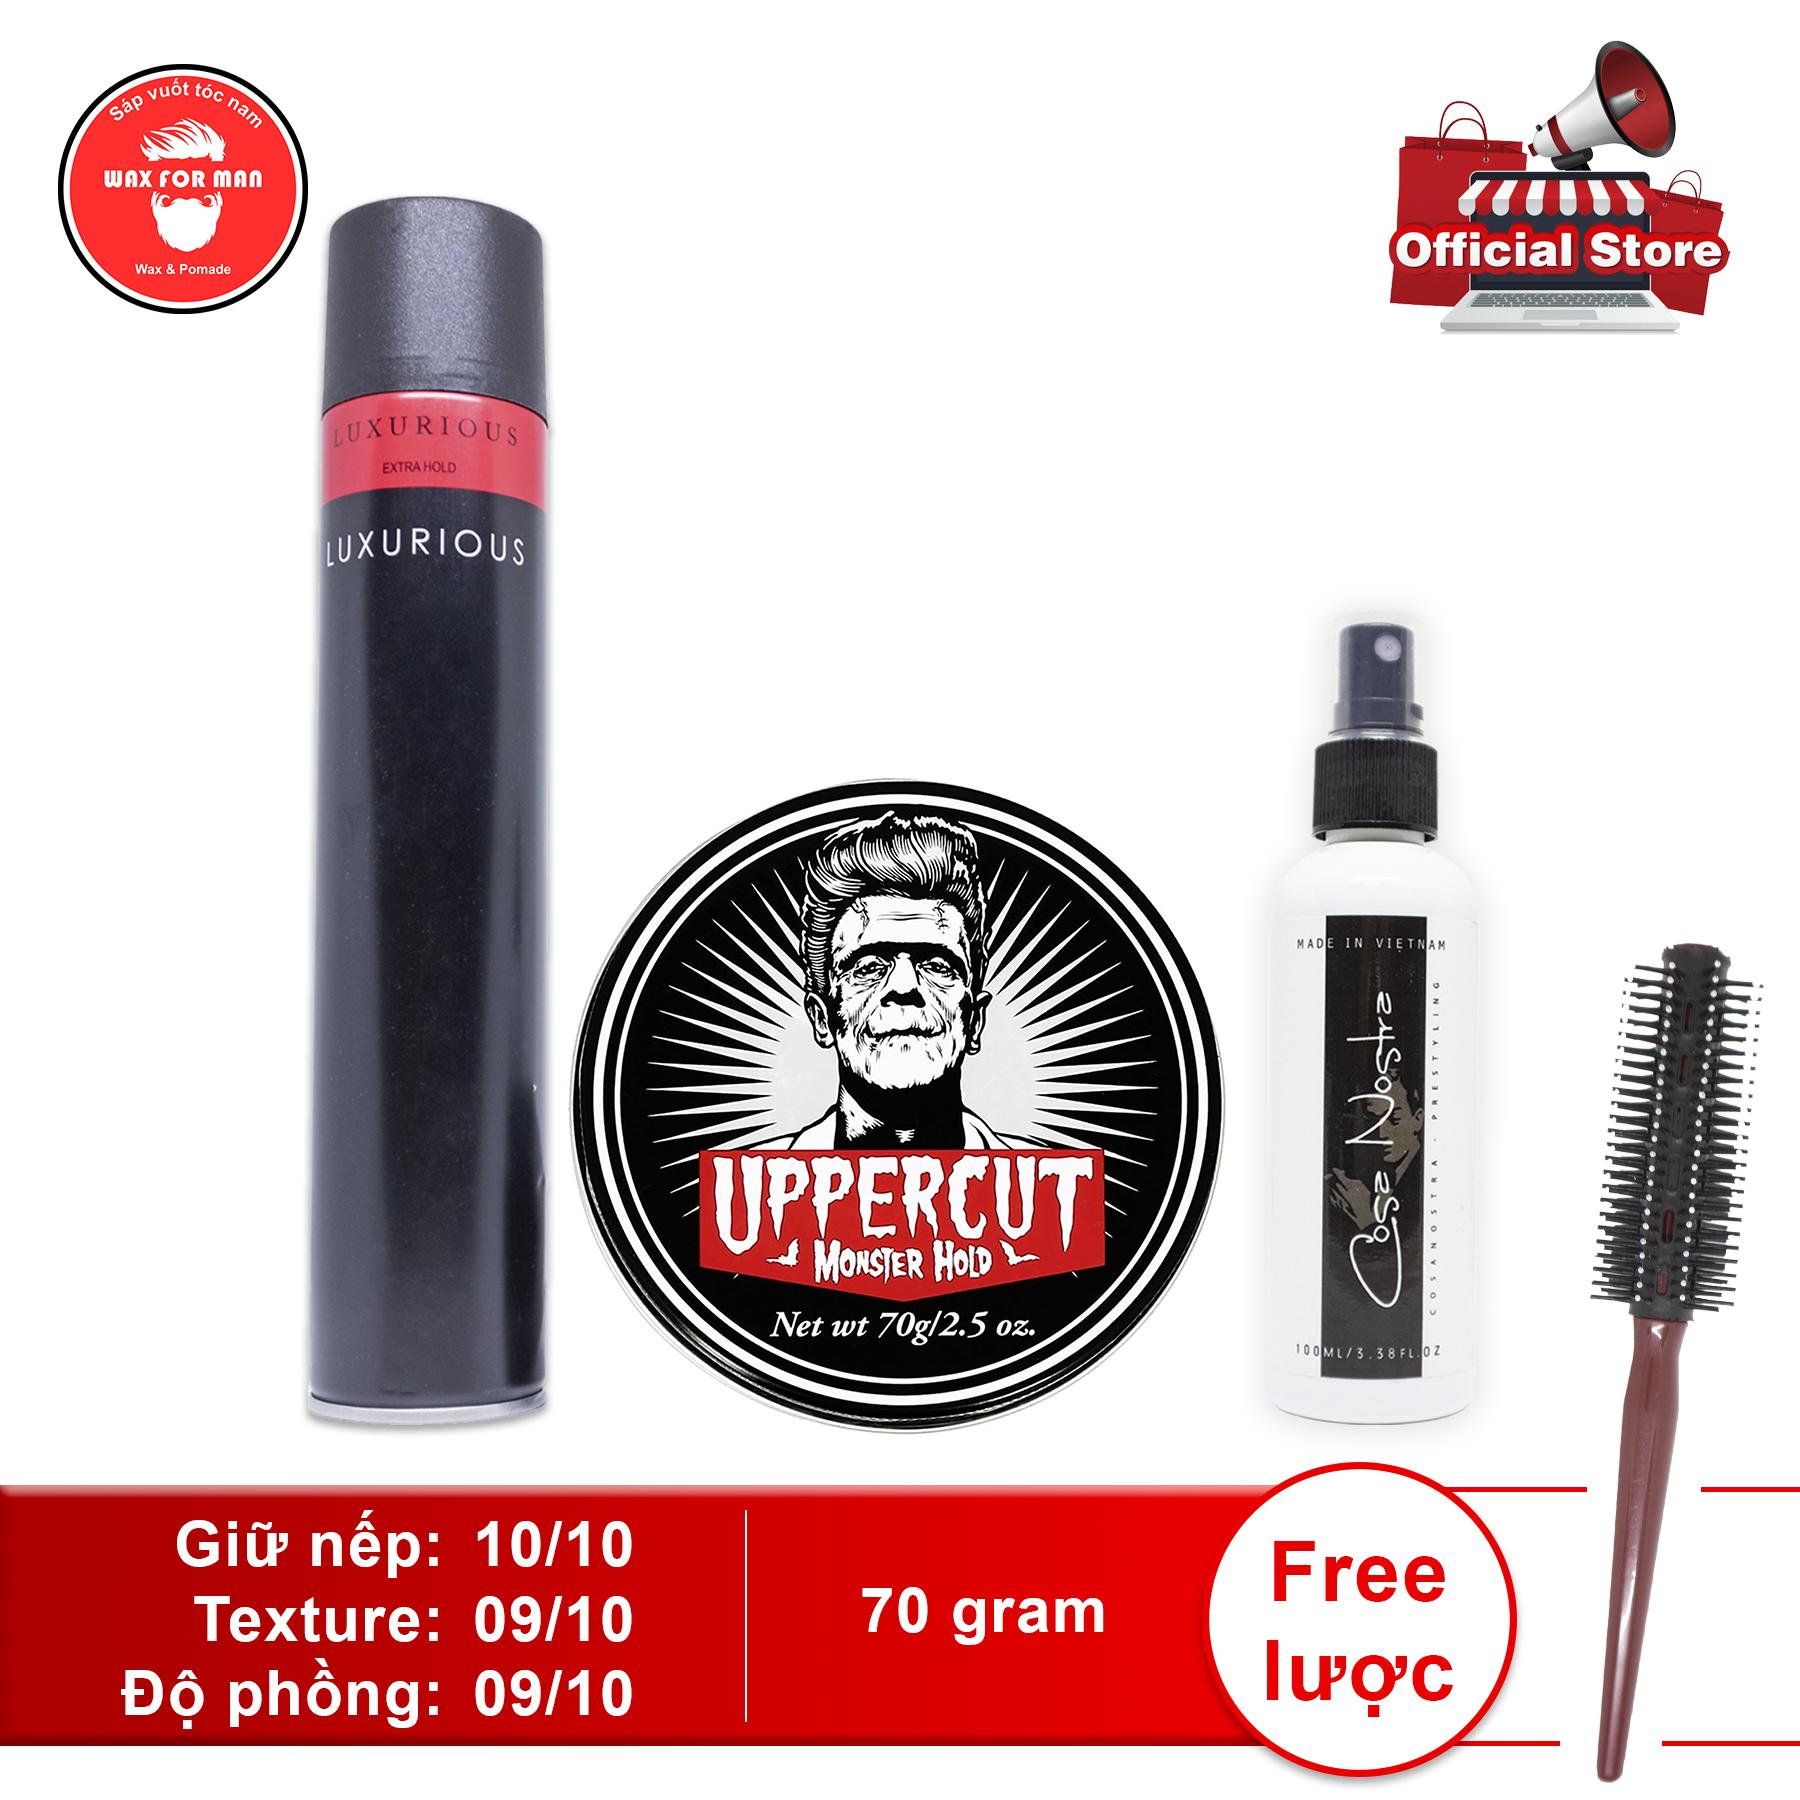 Sáp vuốt tóc Uppercut Monster Hold Pomade + Cosa Nostra pre-styling + gôm Luxurious